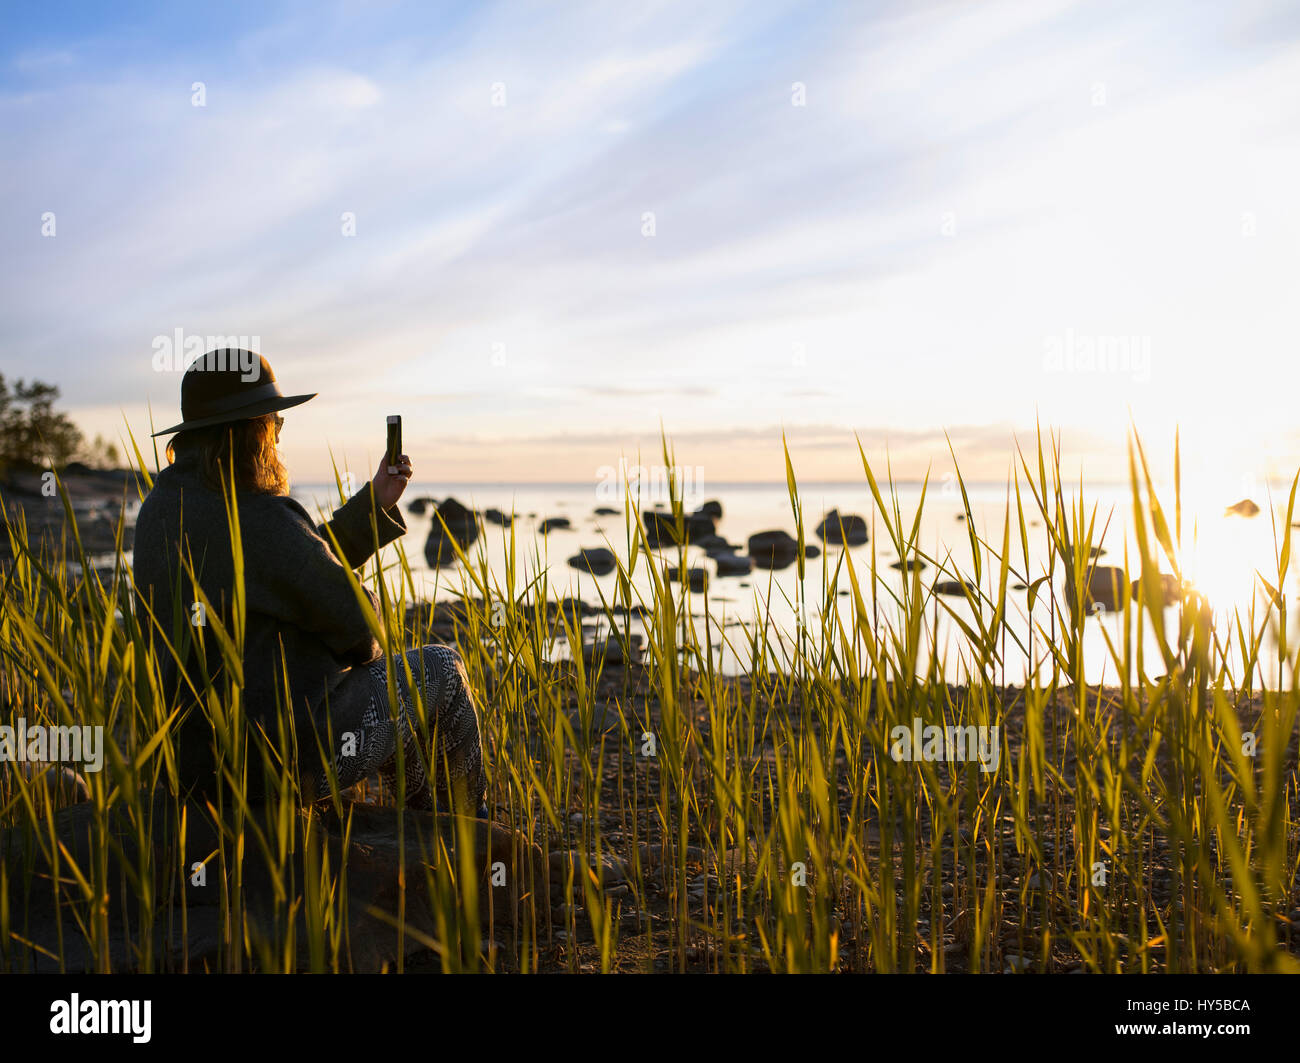 Finland, Ostrobothnia, Jakobstad, Faboda, Woman sitting among reeds by sea and photographing - Stock Image